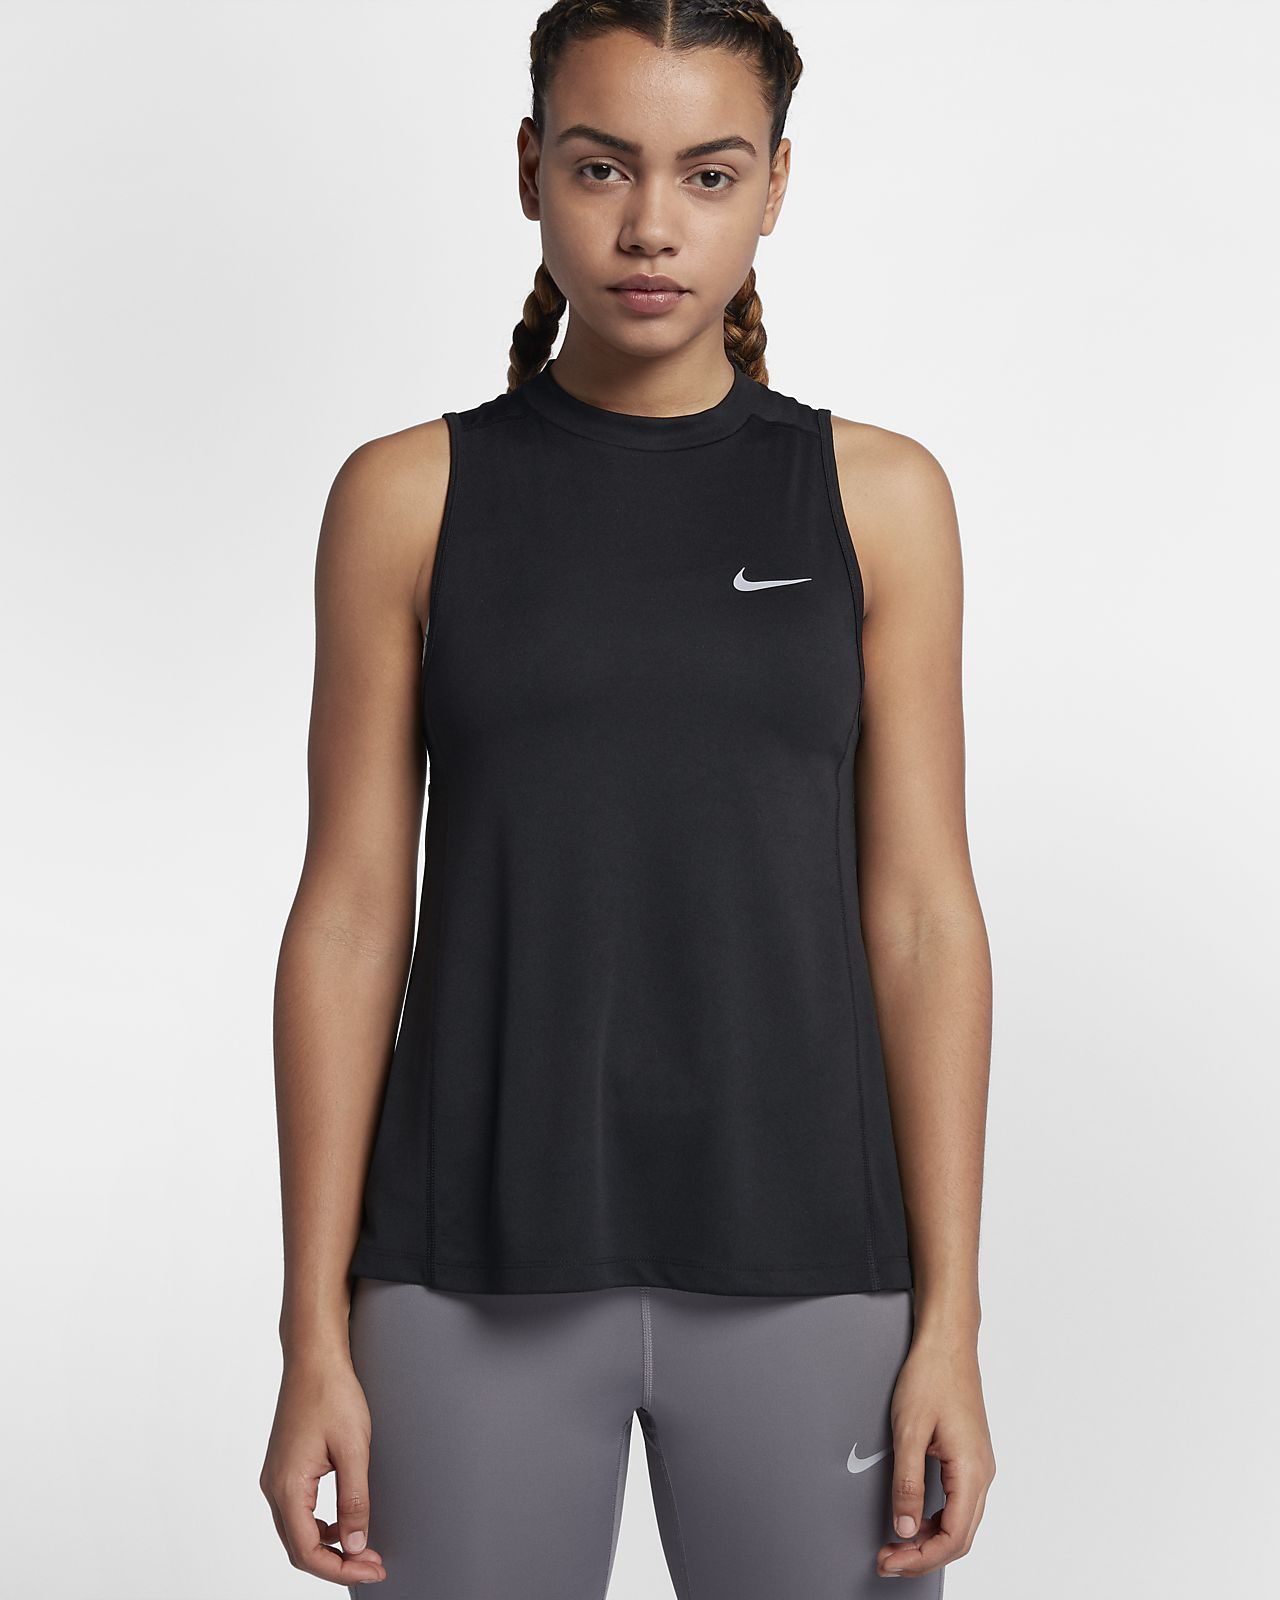 ... Nike Dri-FIT Miler Women's Running Tank